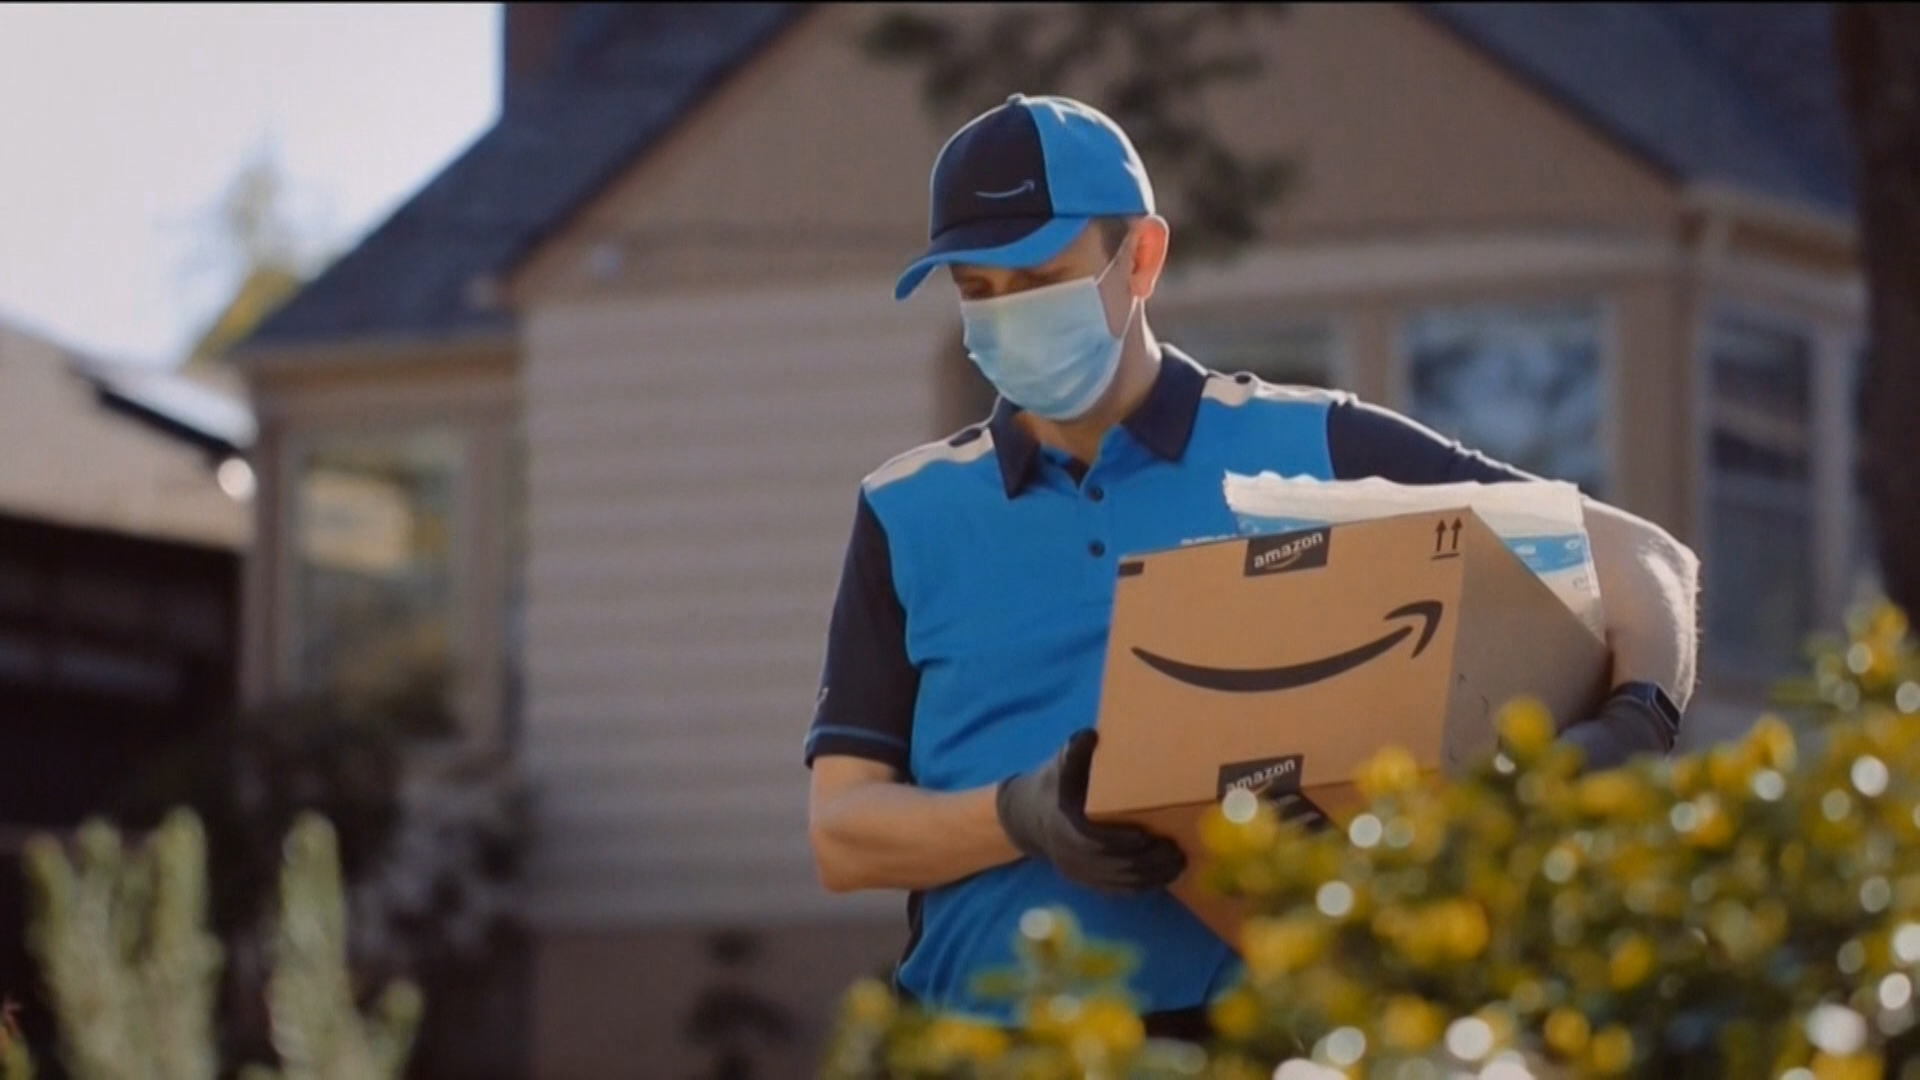 Amazon---Covid-19---Healthcare_category---NBC_-_May_8--2020---dtc---USA---English---TV_commercial---30_seconds.mp4